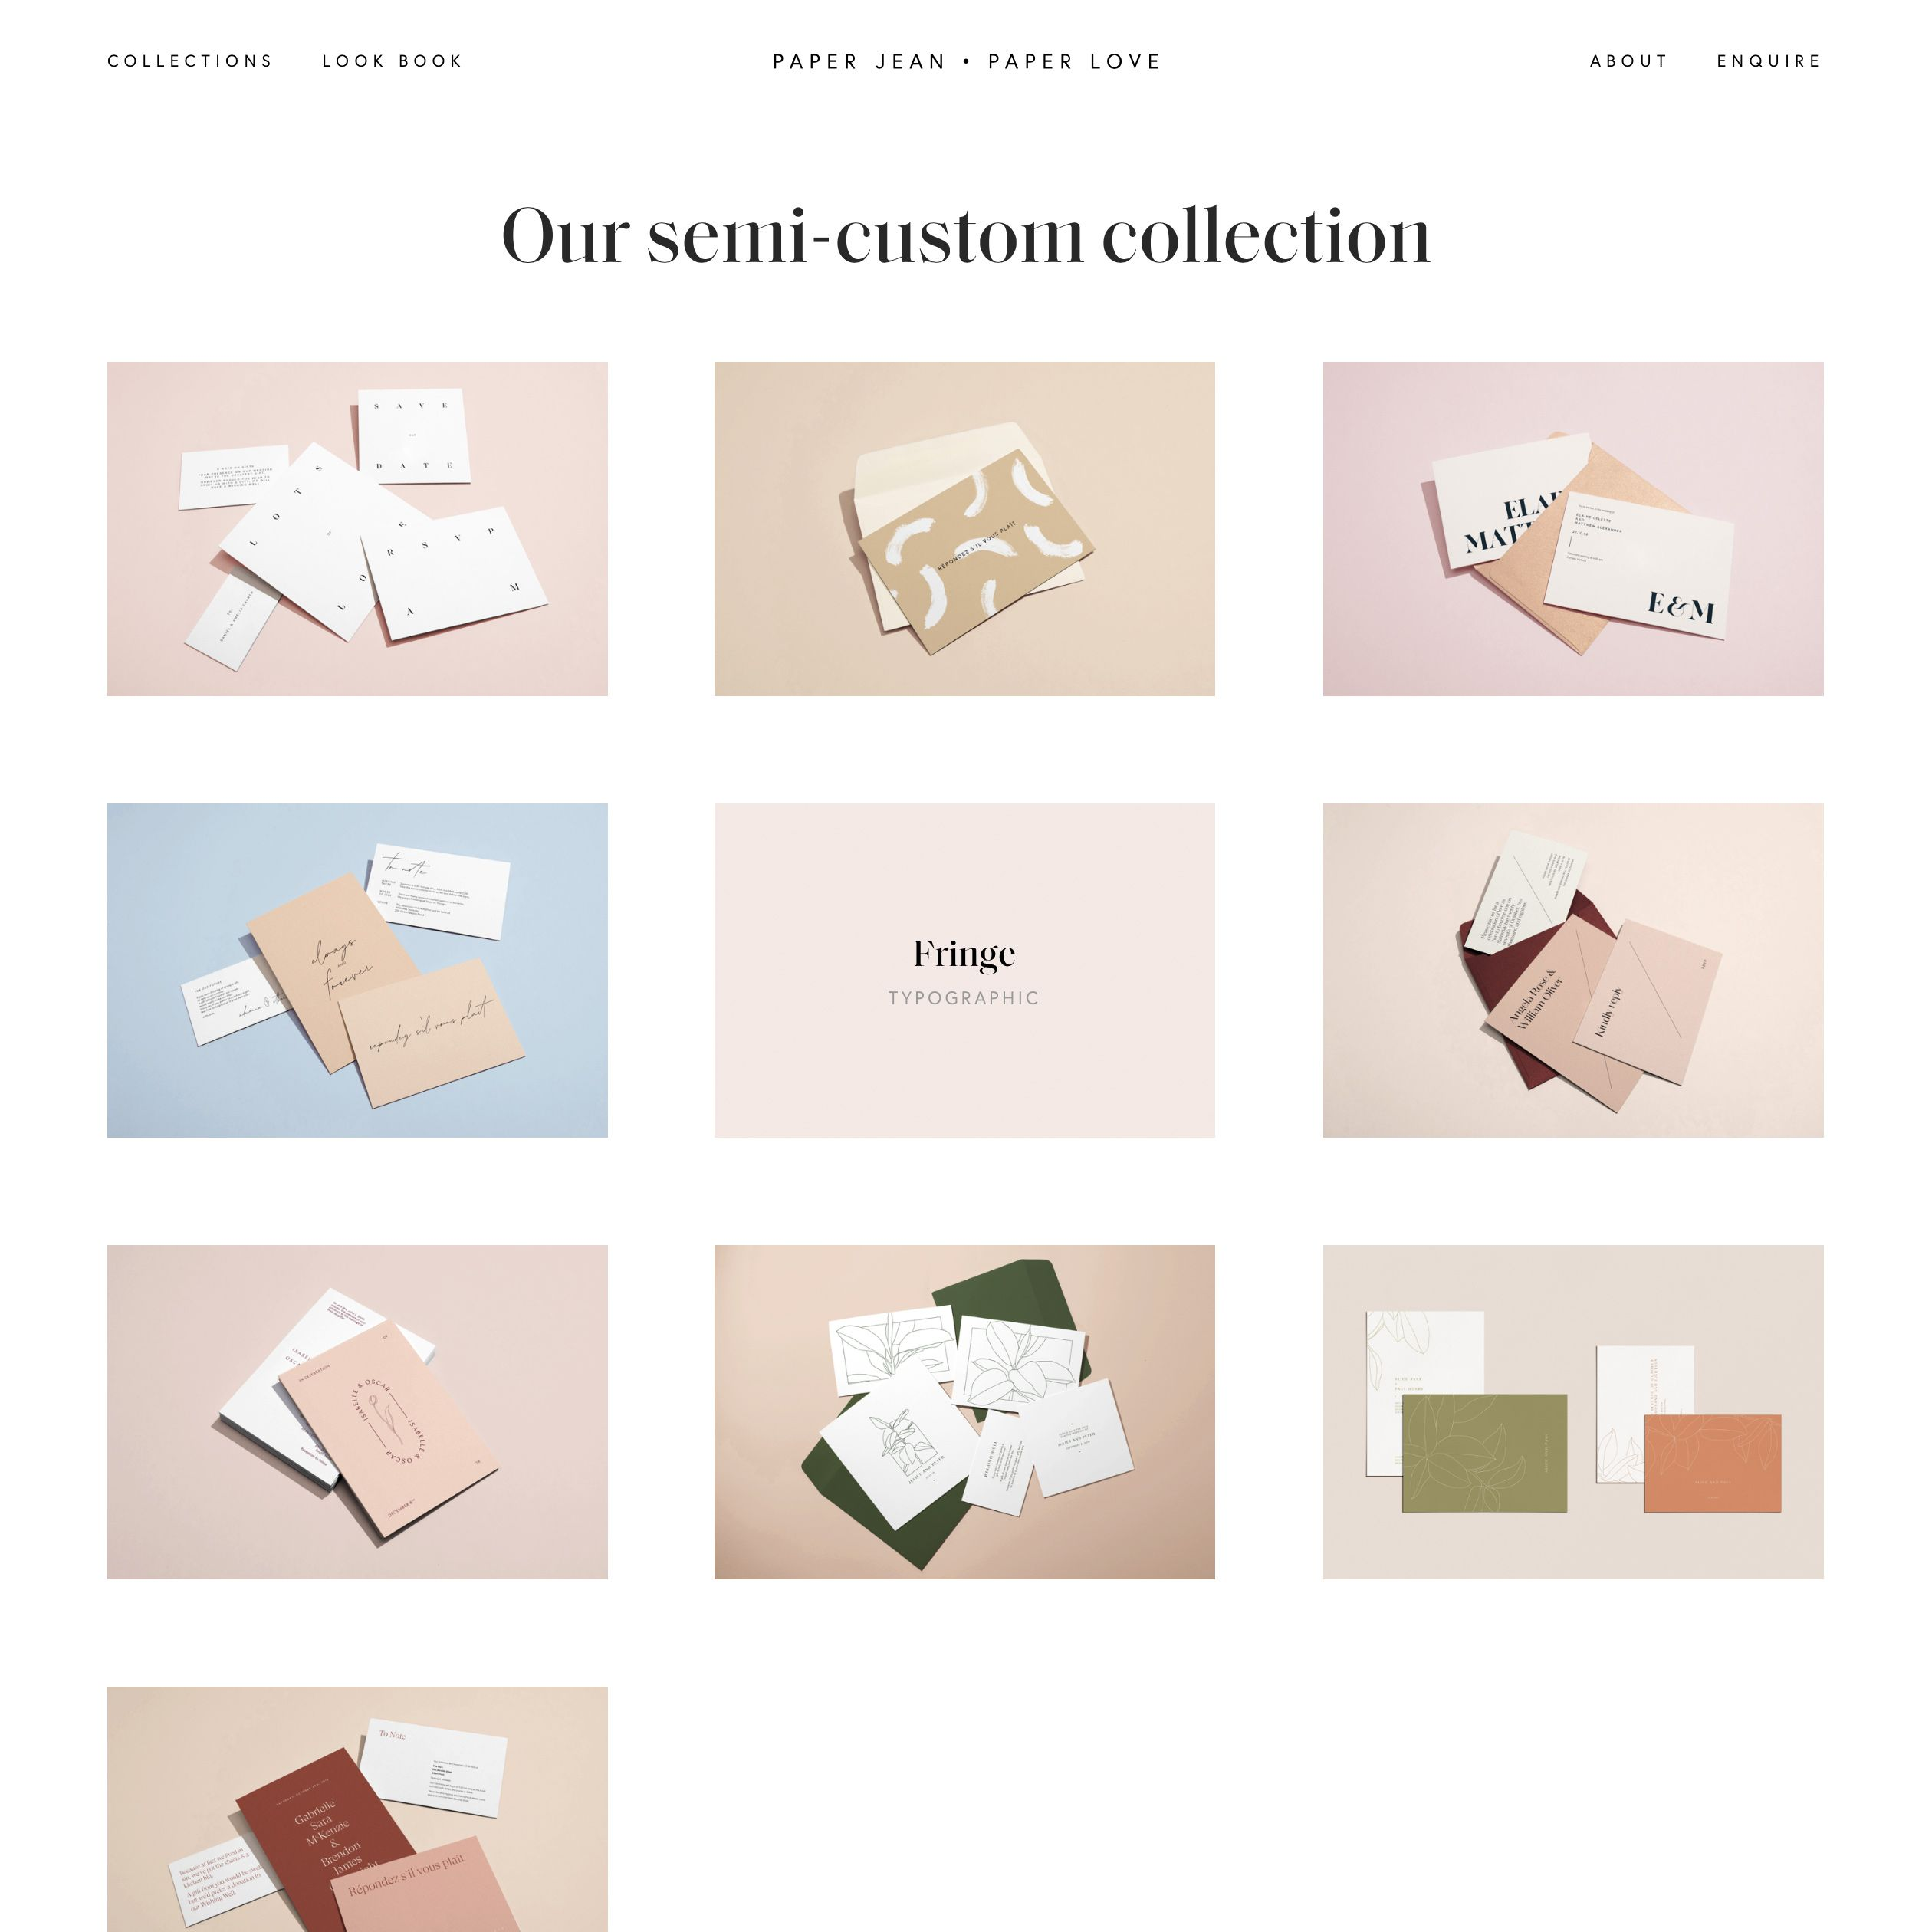 Fonts Used Saol Display And Europa Typewolf Typography Inspiration Wedding Stationery Design Modern Wedding Stationery Beautiful Wedding Stationery